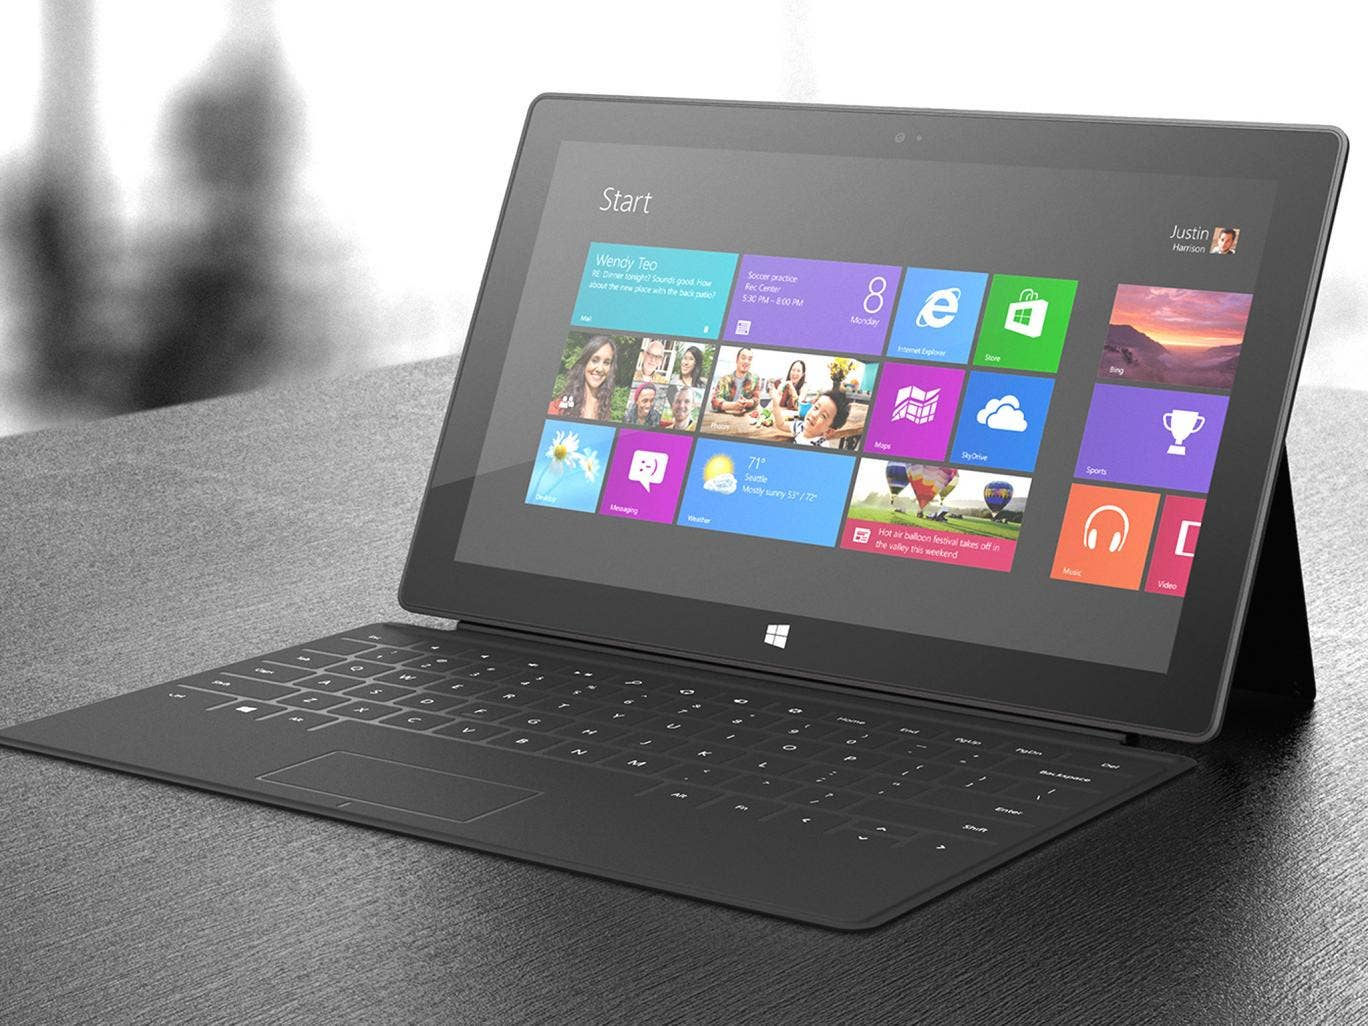 The Surface: Microsoft is hoping to own the 'tablets for typists' market